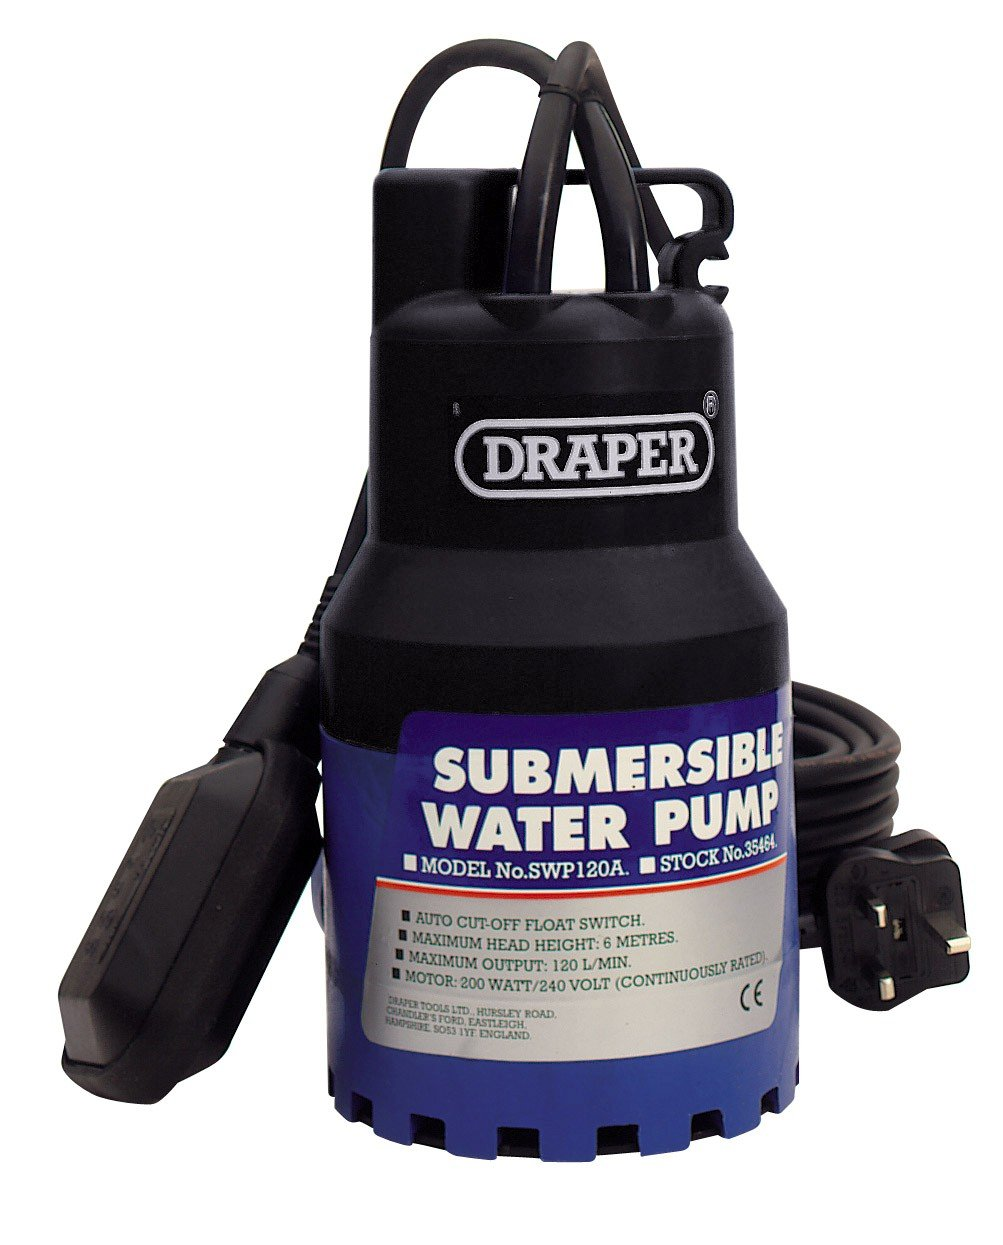 Draper 35467 235-Litres-per-Minute 230-Volt Submersible Dirty Water Pump with 8.5 m Lift and Float Switch Hand Tools Other Tools Accessories Submersible Pumps Power Tools